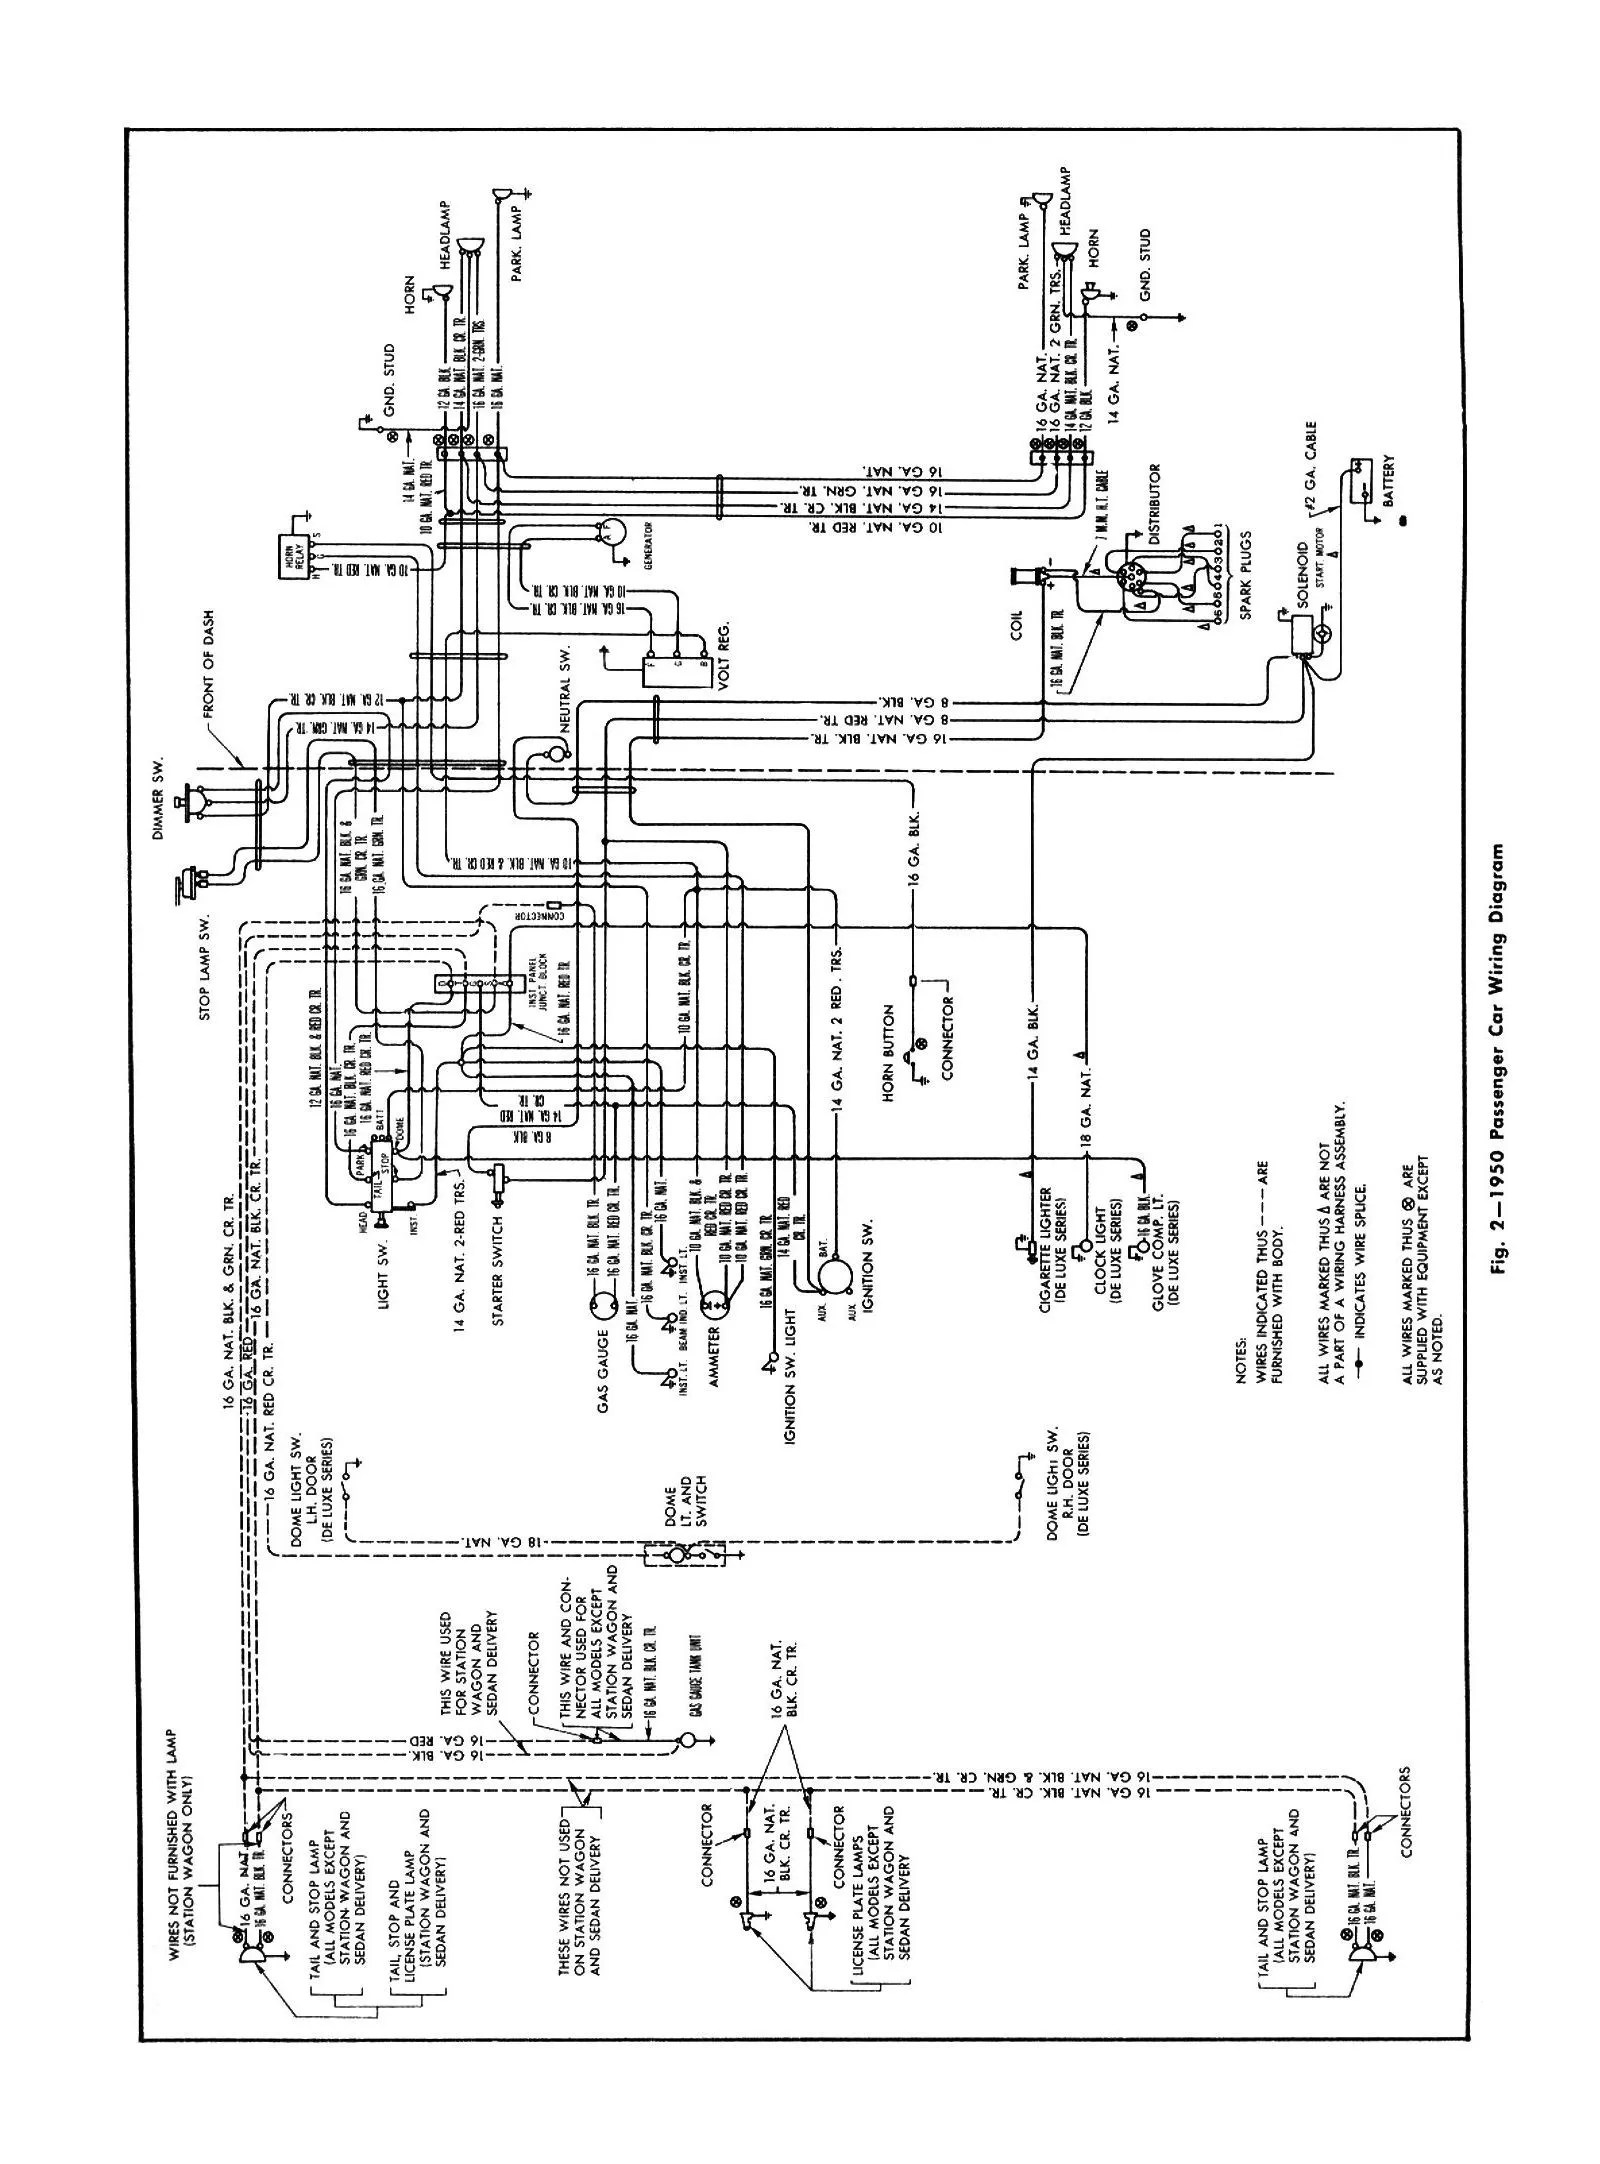 1952 chevy truck wiring diagram wiring library 1949 ford wiring diagram 1952 chevy pick up wiring diagram [ 1600 x 2164 Pixel ]